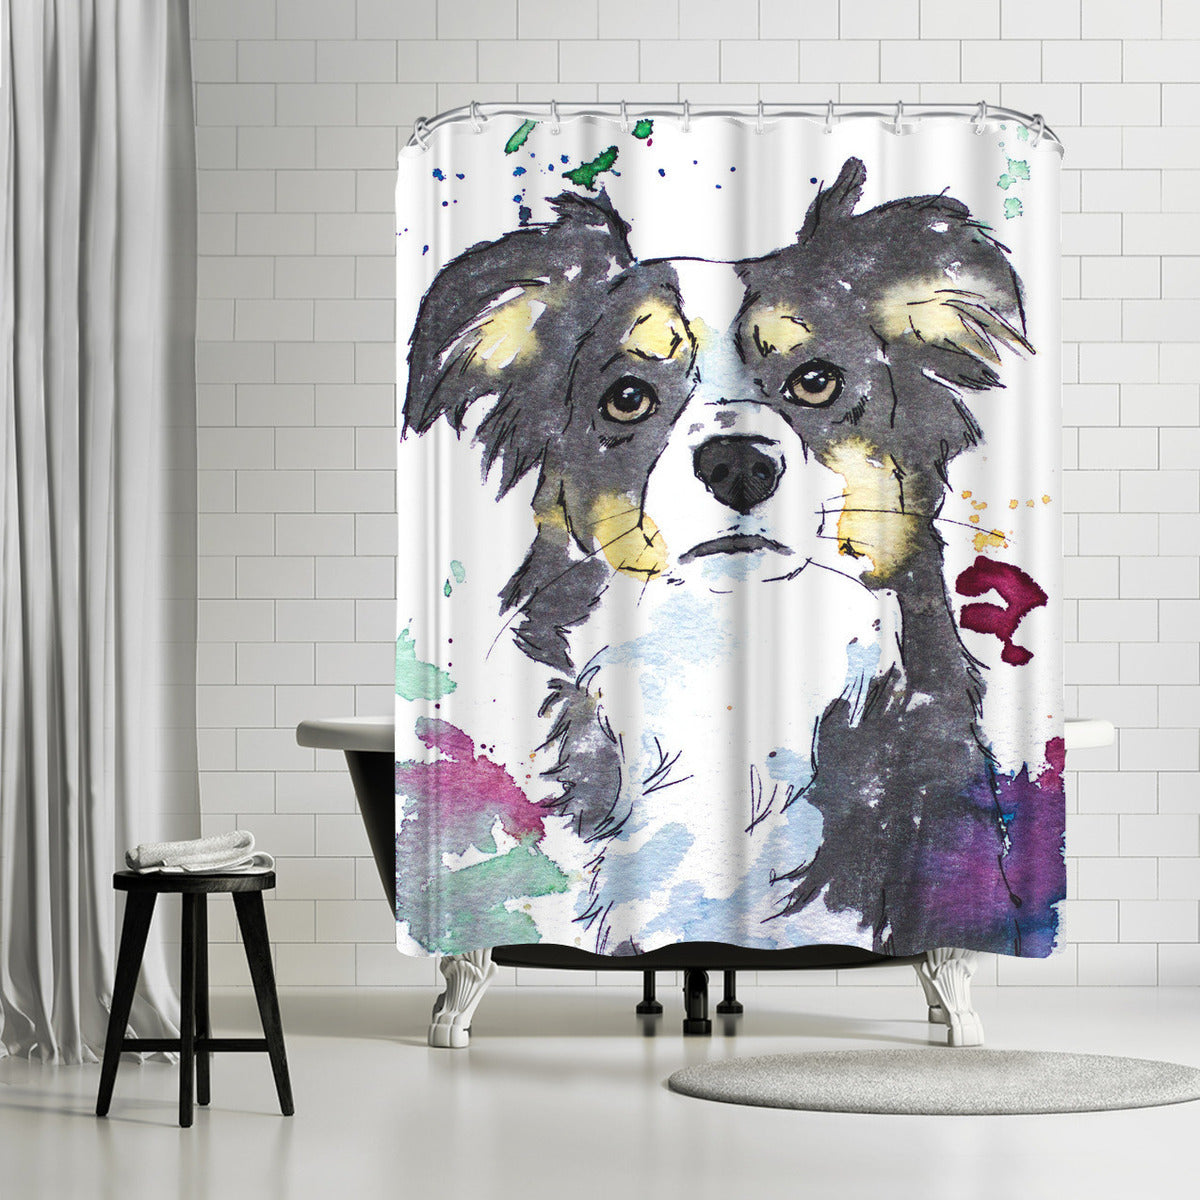 Sweet Puppy by Allison Gray Shower Curtain - Shower Curtain - Americanflat